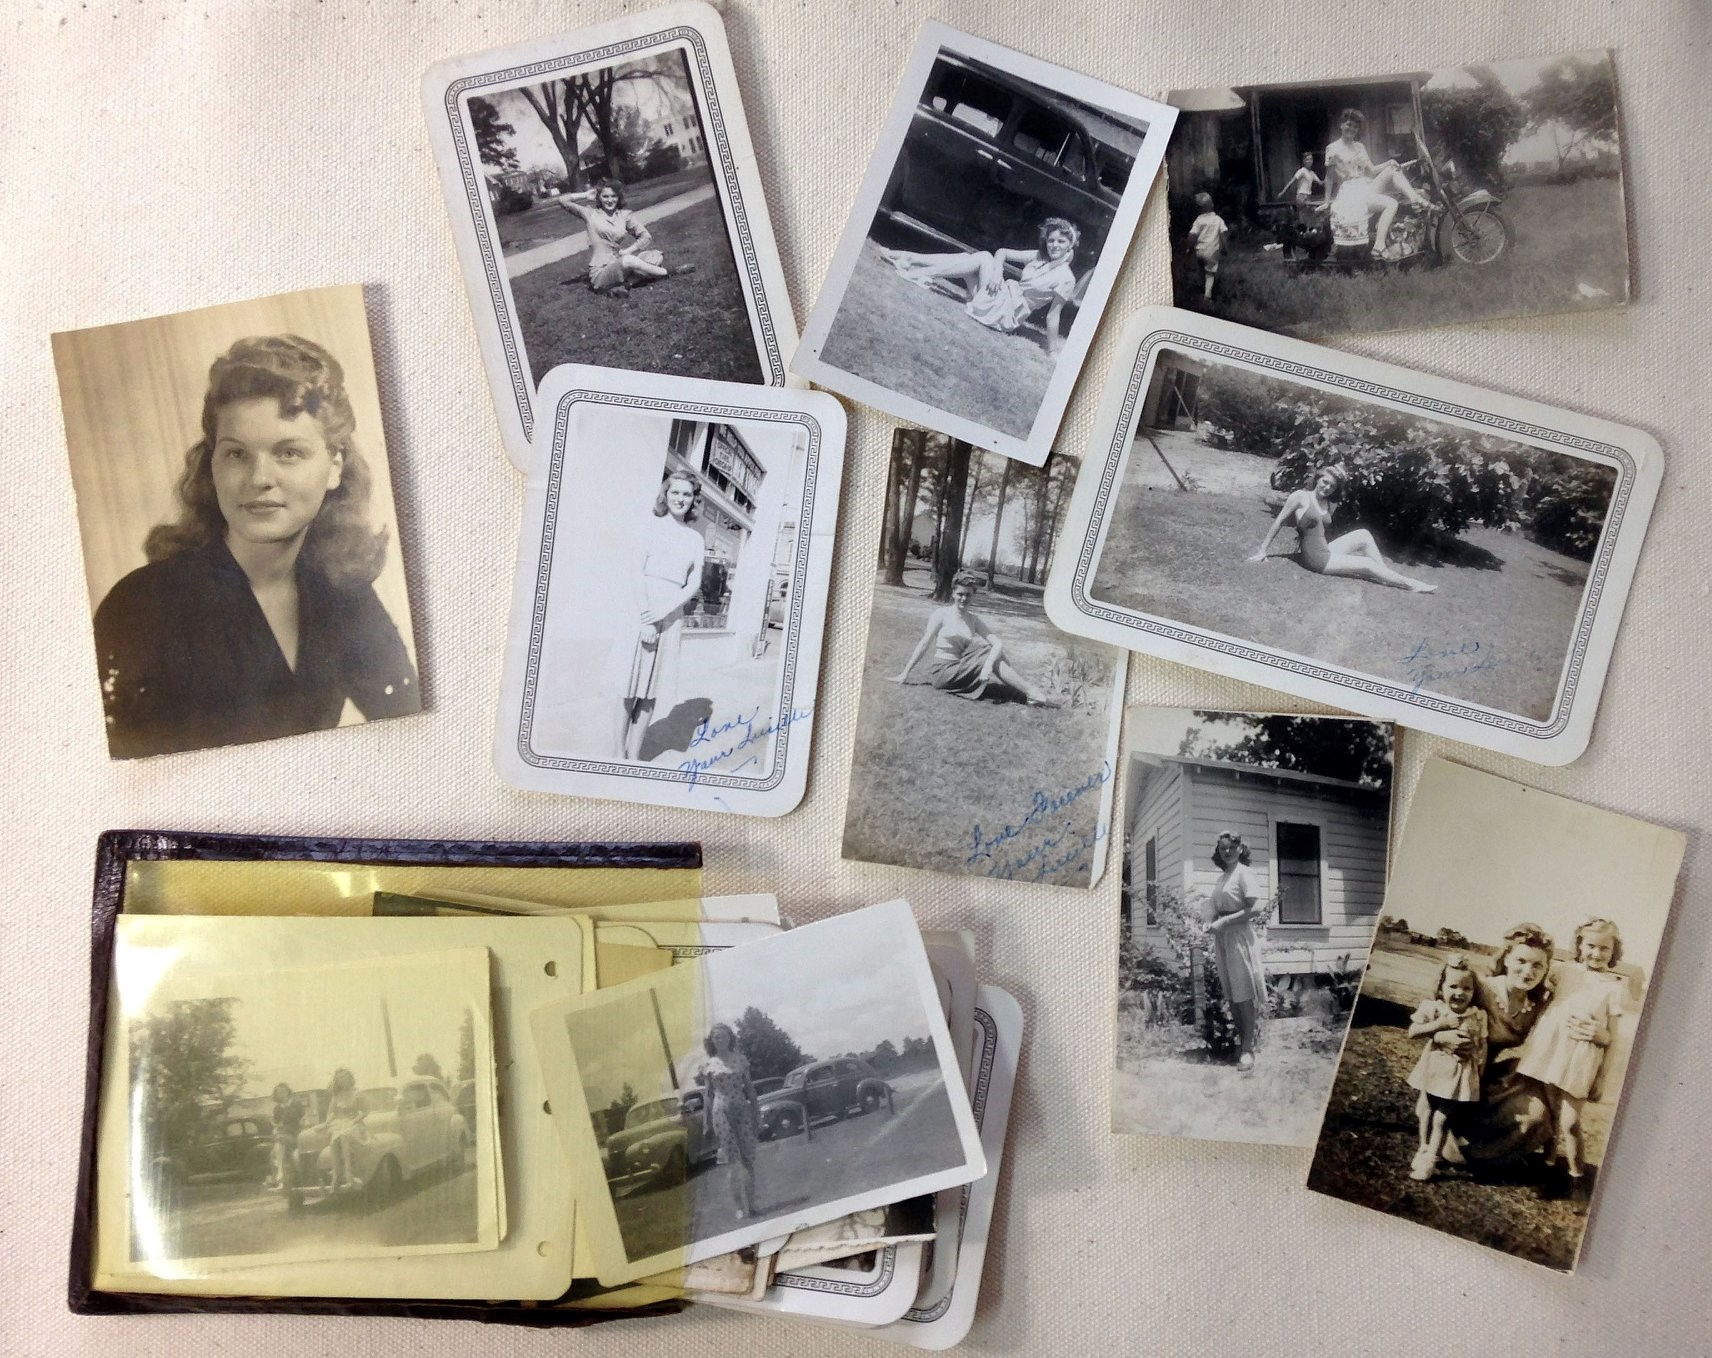 Lucille Alyne Scharff Hiett. The little pouch of photos PFC David E Hiett carried during the war that were so popular in the 3rd squad of the 17th Engineers, Company C. (Courtesy Mark Hiett)